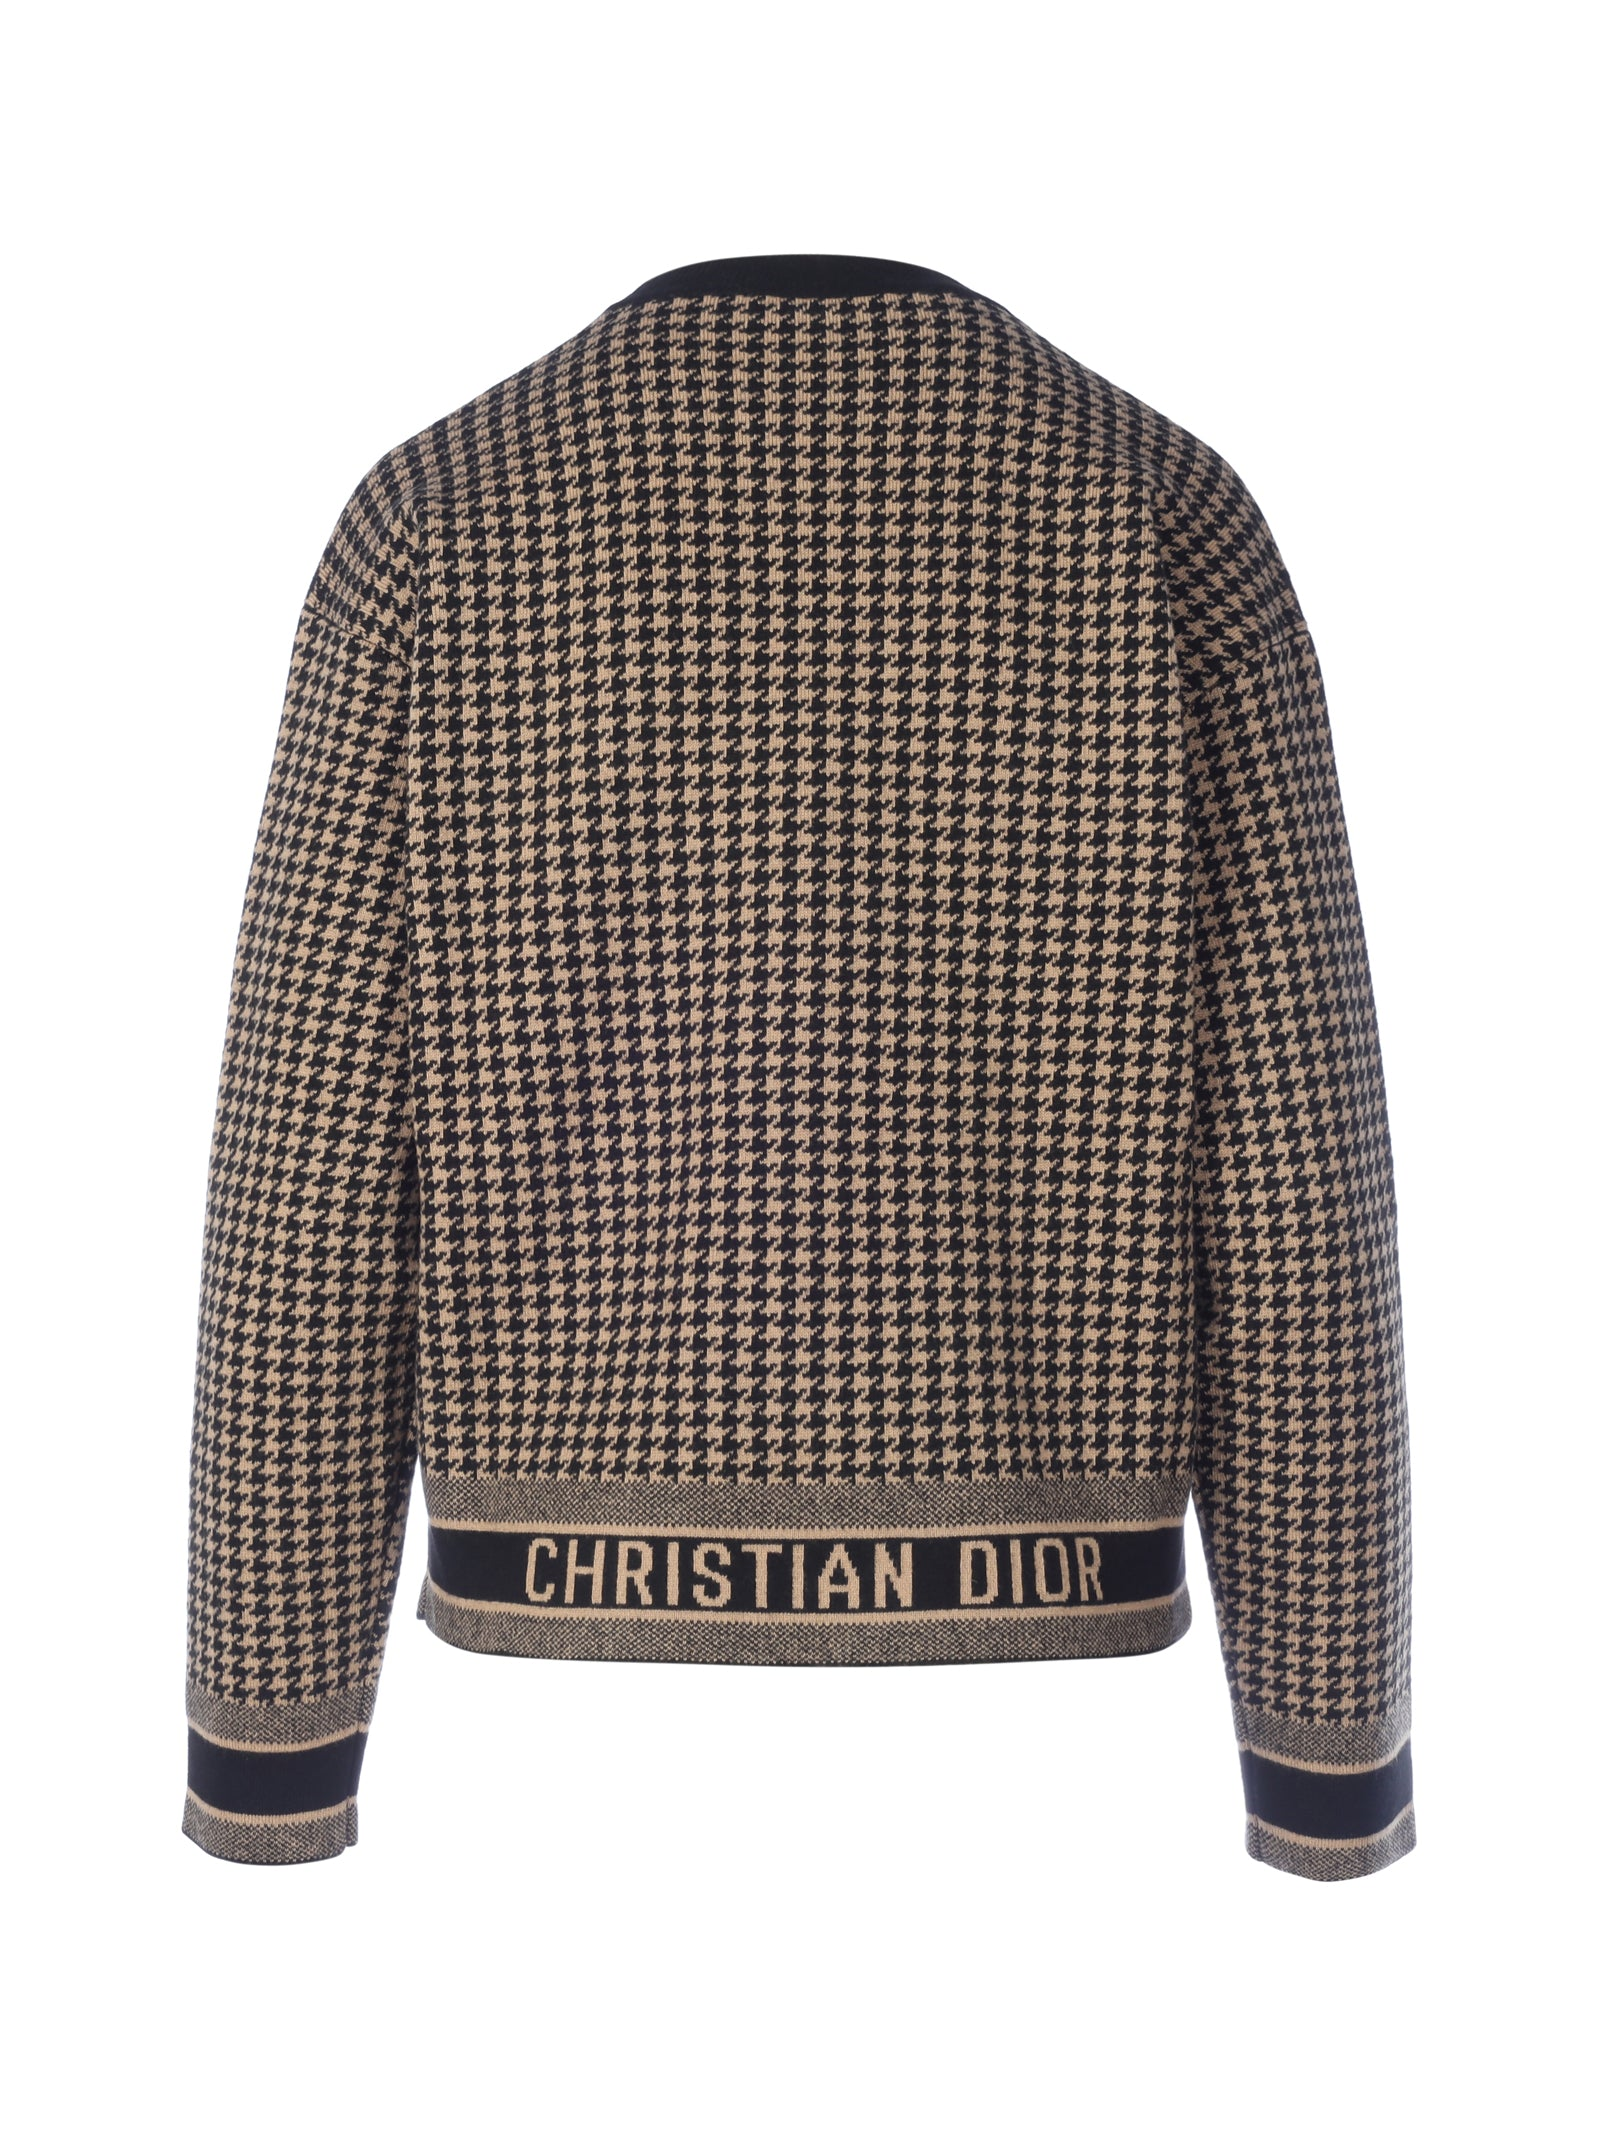 HOUNDSTOOTH FANTAISIE 30 MONTAIGNE JACQUARD KNIT SWEATER